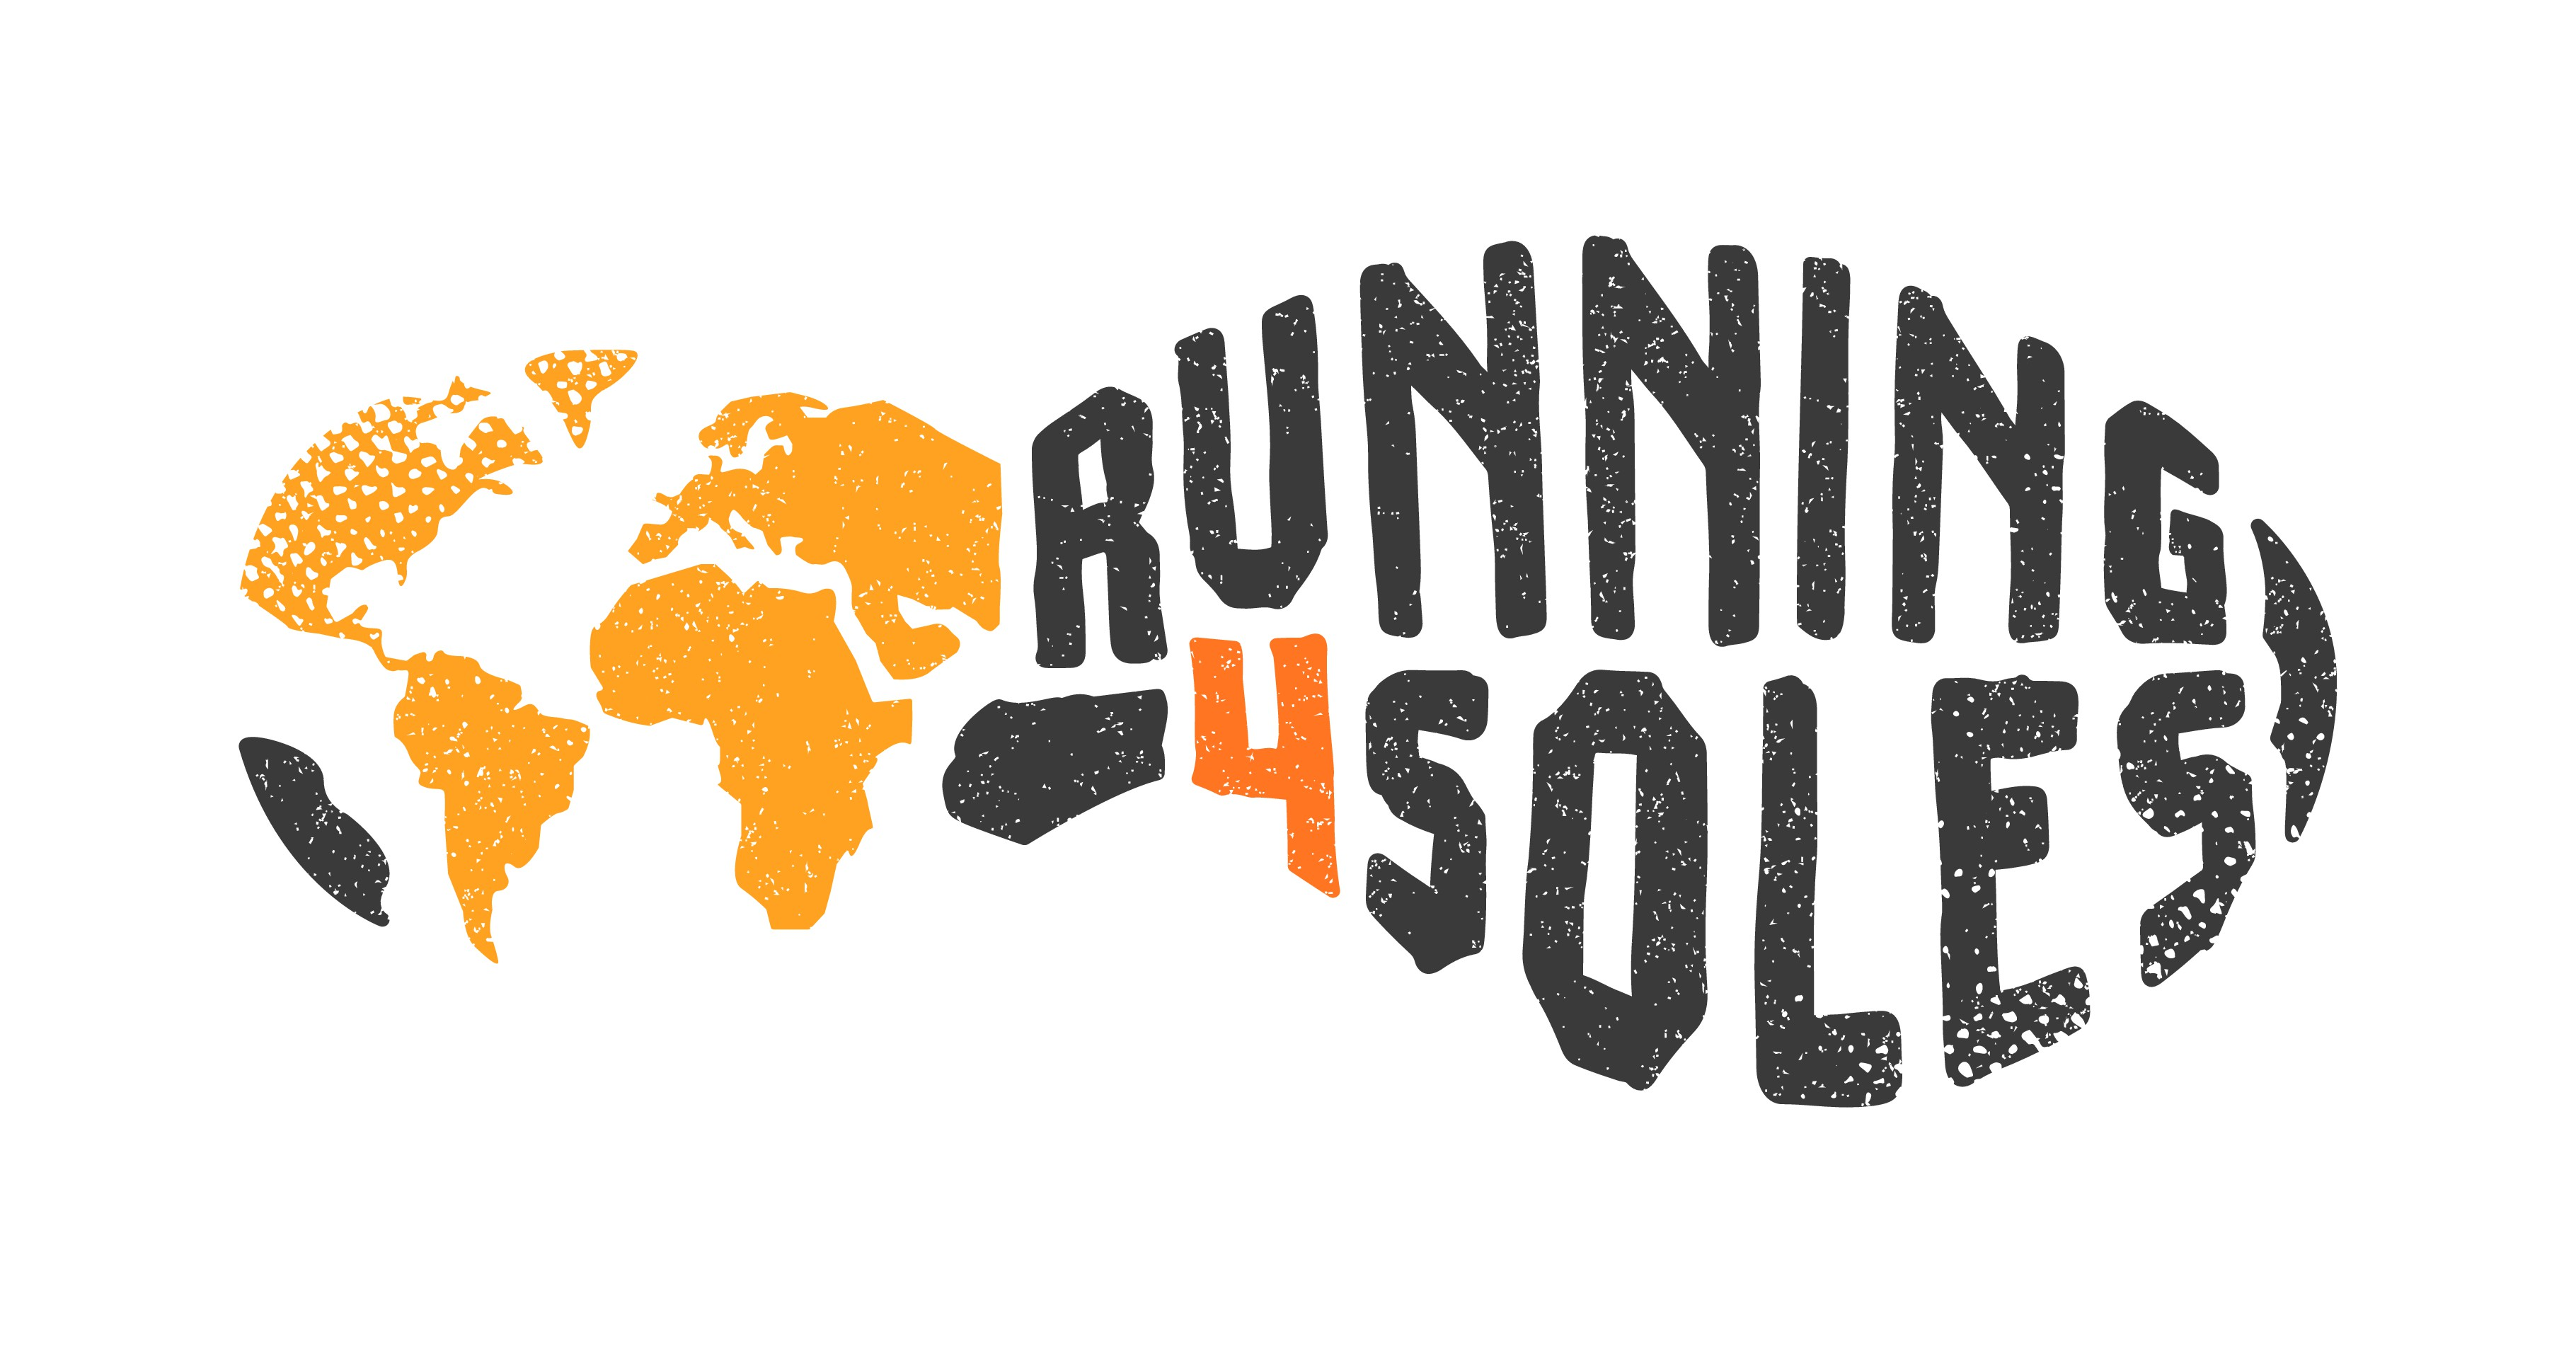 Running can help save the world. I need a logo that invites people to believe that.